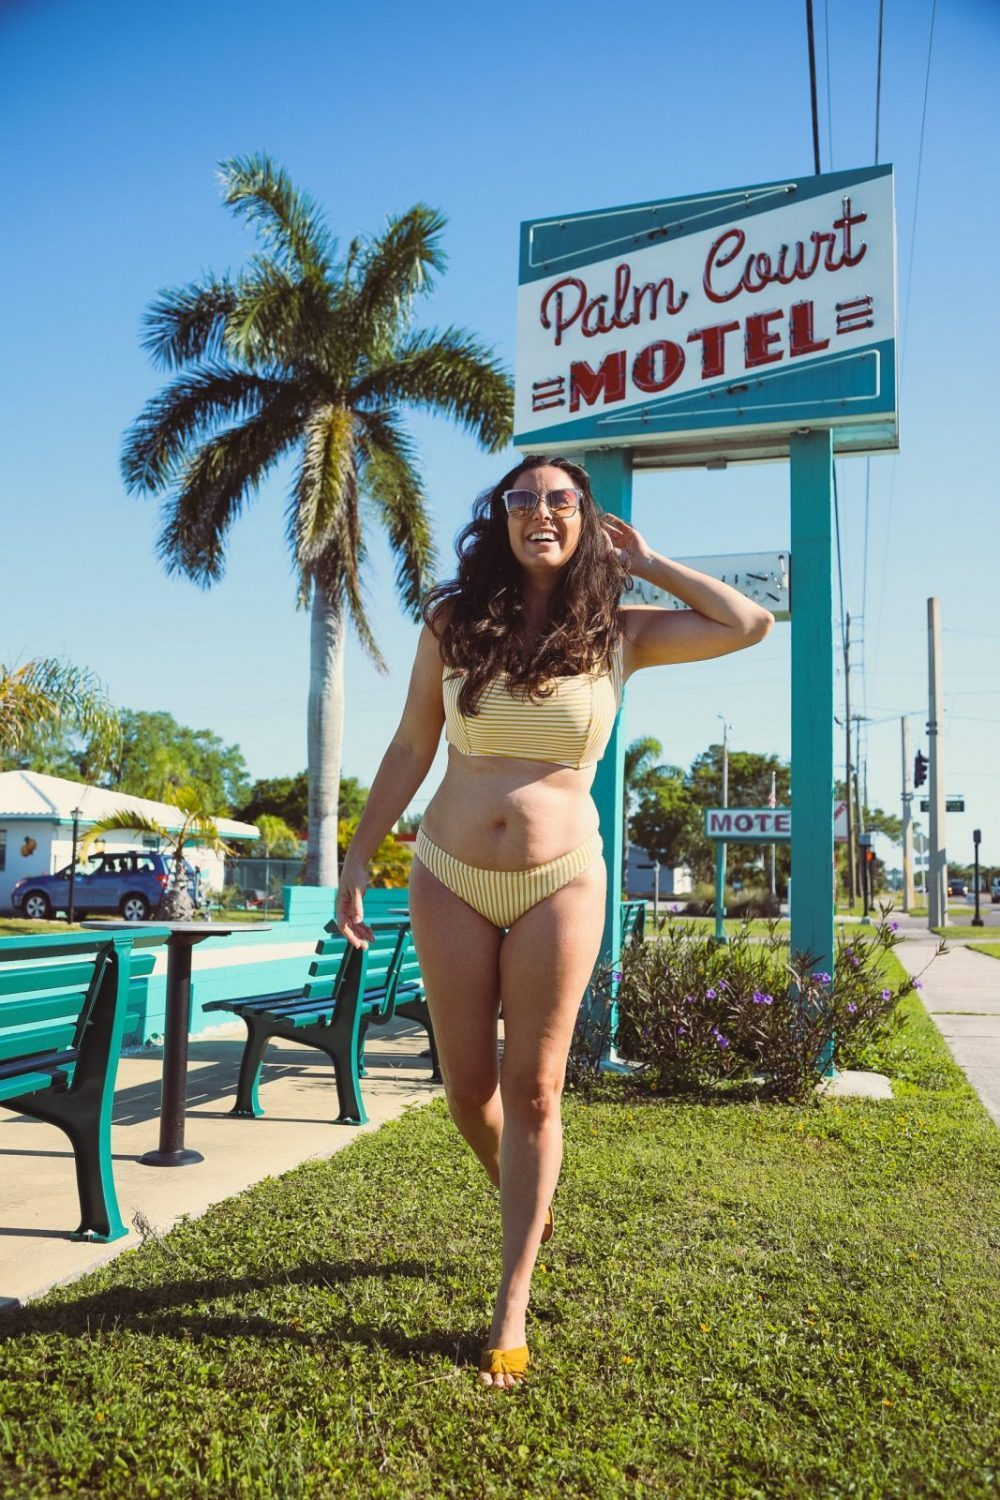 Style on a Budget: 9 Best Swimsuits for Moms   Swimsuits for Moms by popular Florida fashion blog, Fresh Mommy Blog: image of a woman standing outside at the Palm Court Motel and wearing a yellow stripe two piece swimsuit.